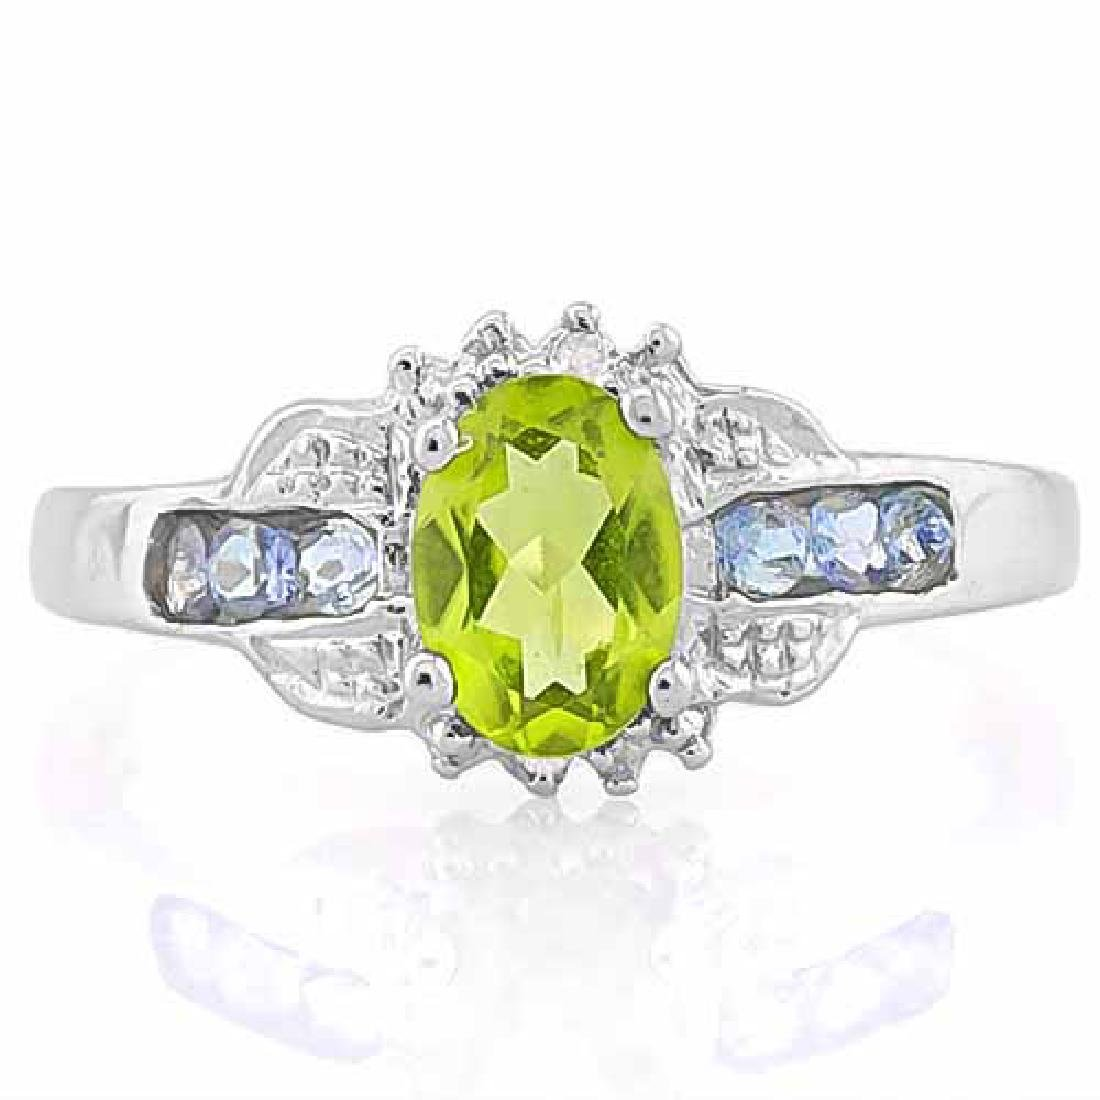 PERIDOT & 1 1/3 CARAT (6 PCS) TANZANITE 925 STERLING SI